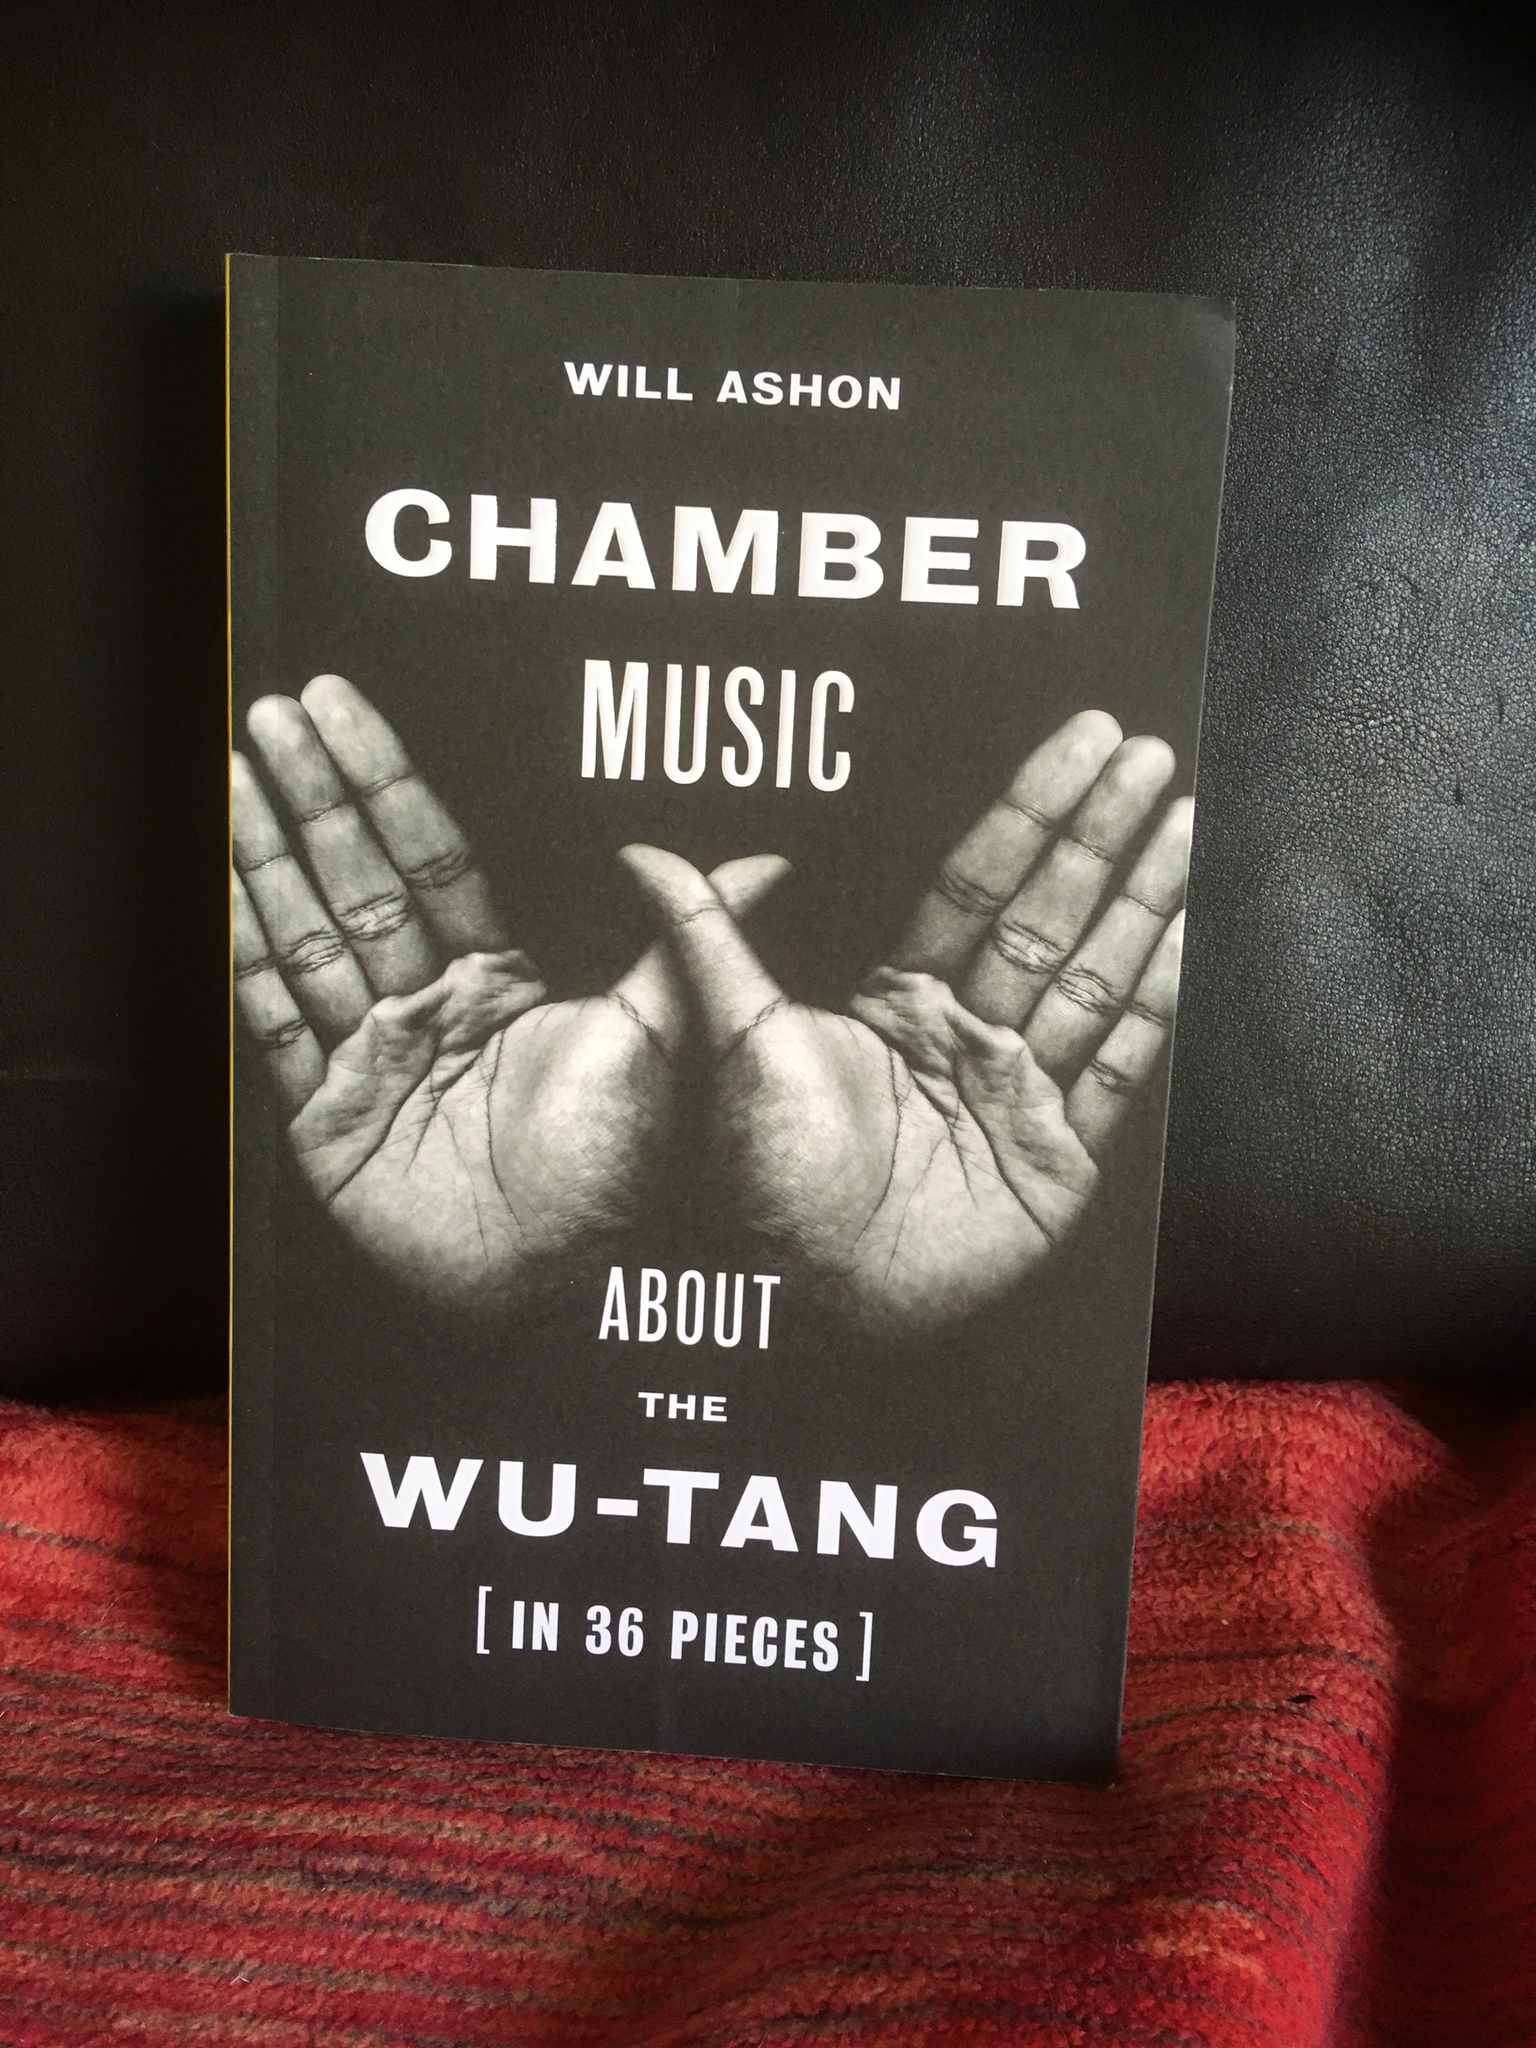 Chamber Music: About the Wu-Tang (in 36 Pieces) by Will Ashon **SIGNED BY AUTHOR**